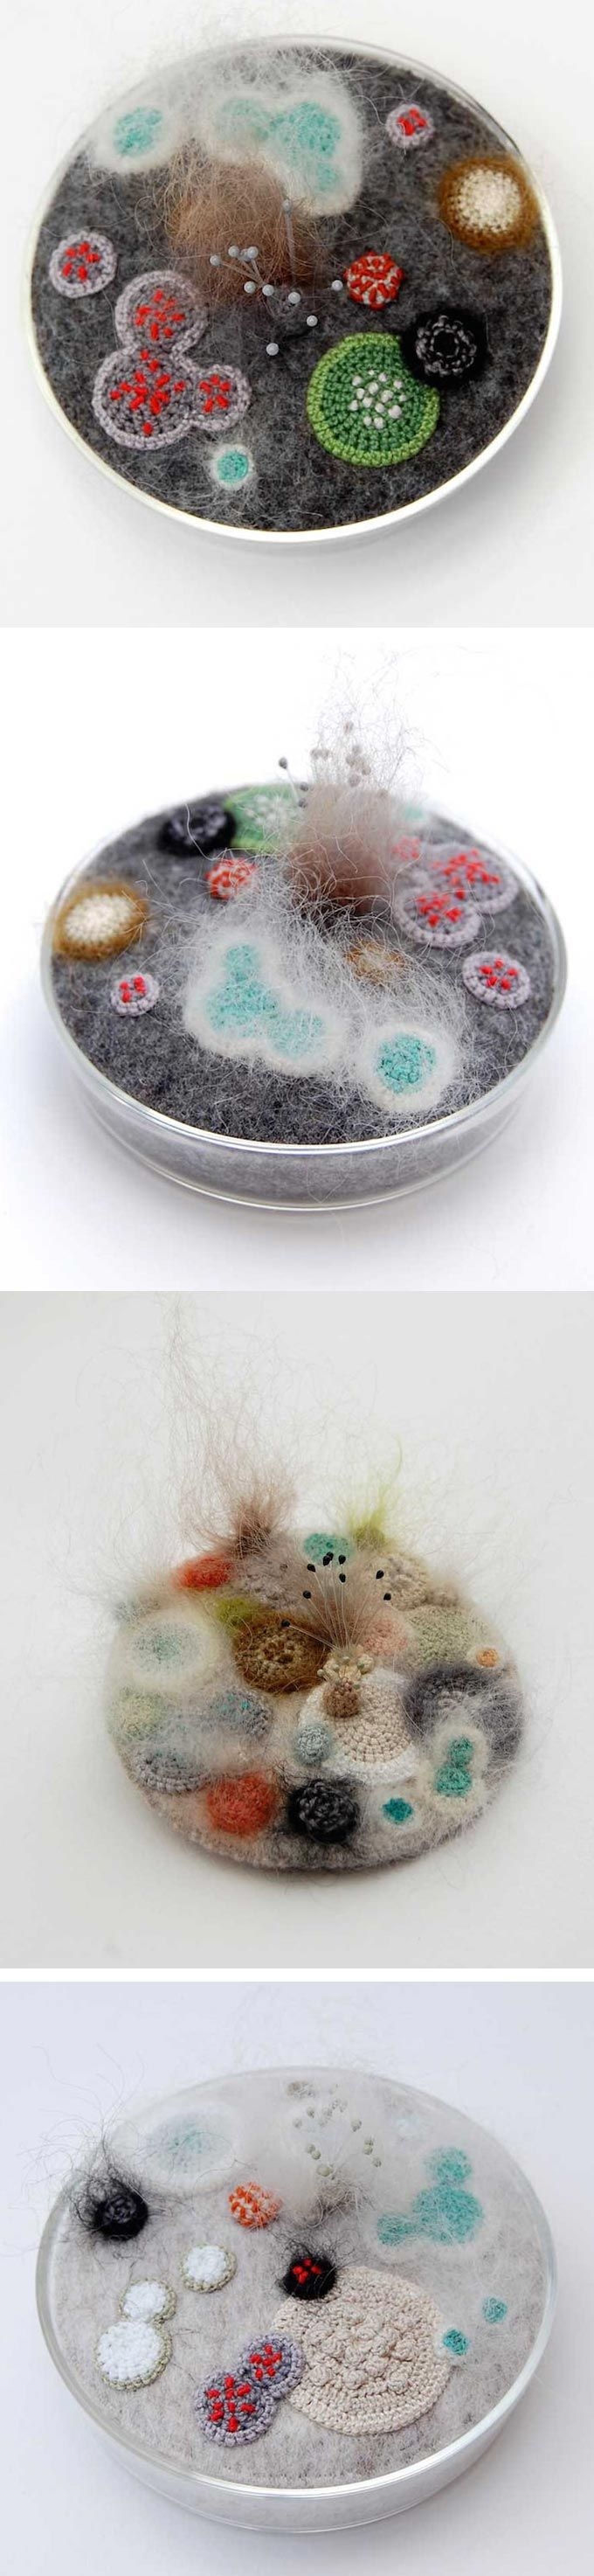 Elin Thomas uses a combination of embroidery thread, crochet, and needle felting to create soft and cuddly mold.